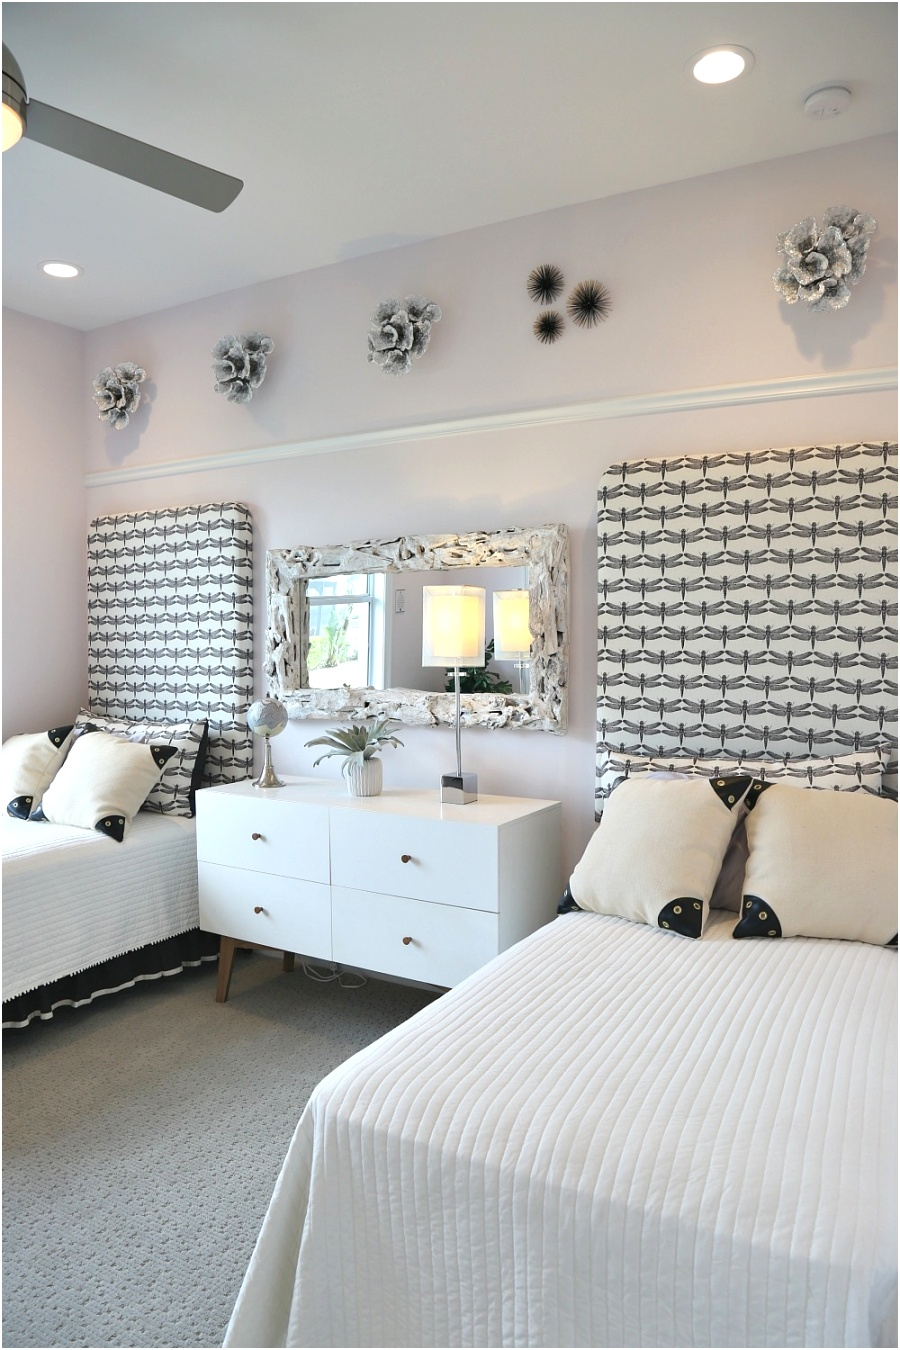 master bedroom renovation ideas woman decorating brown female bedroom decorating ideas teen girl design creative kids